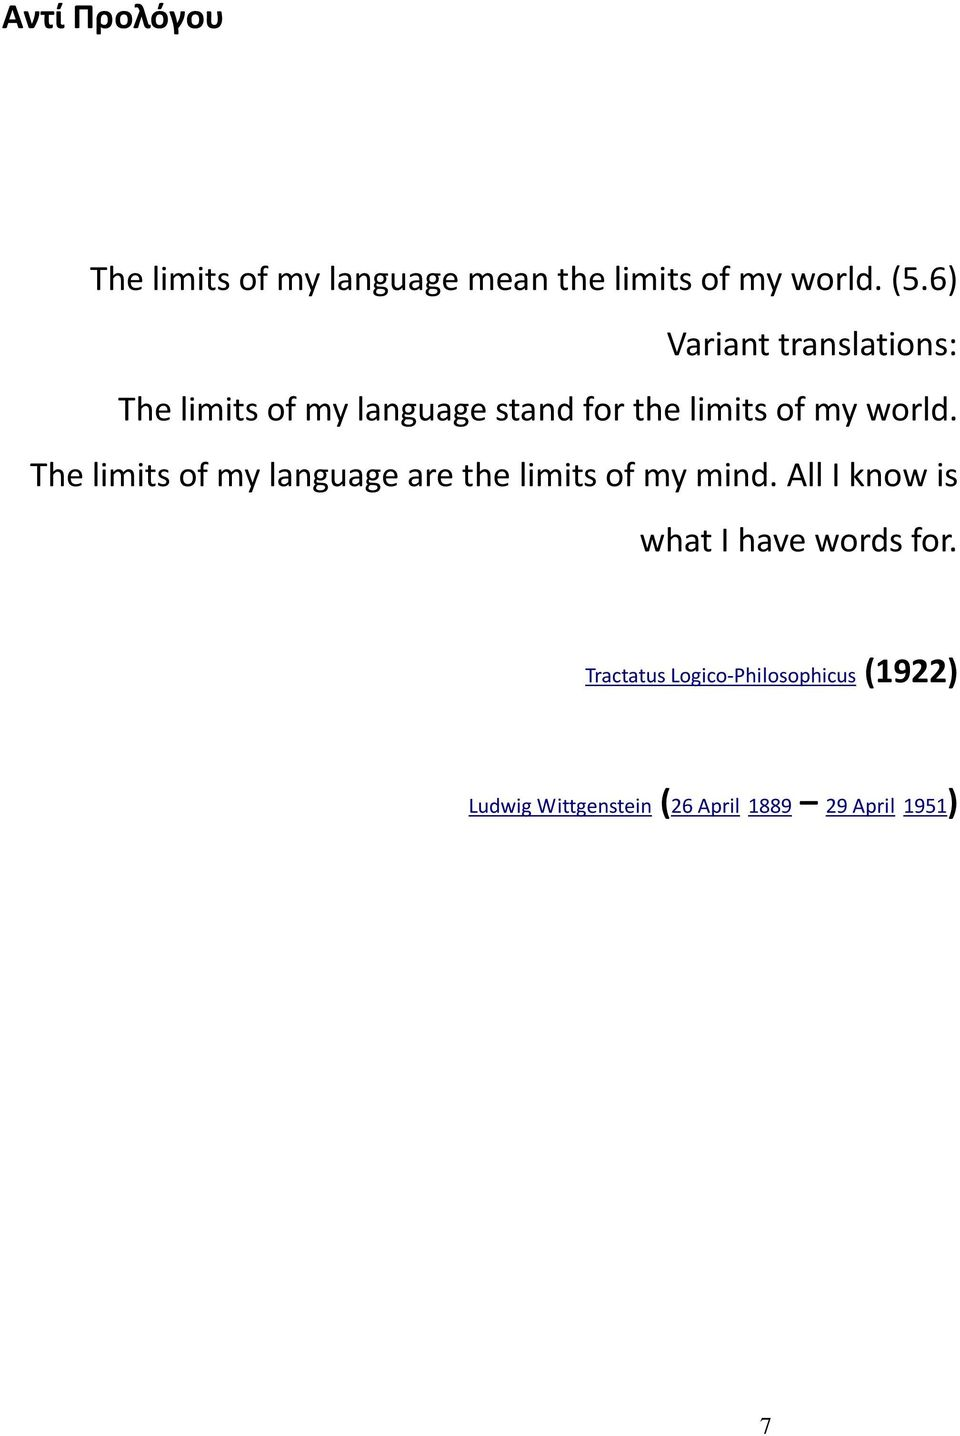 The limits of my language are the limits of my mind.